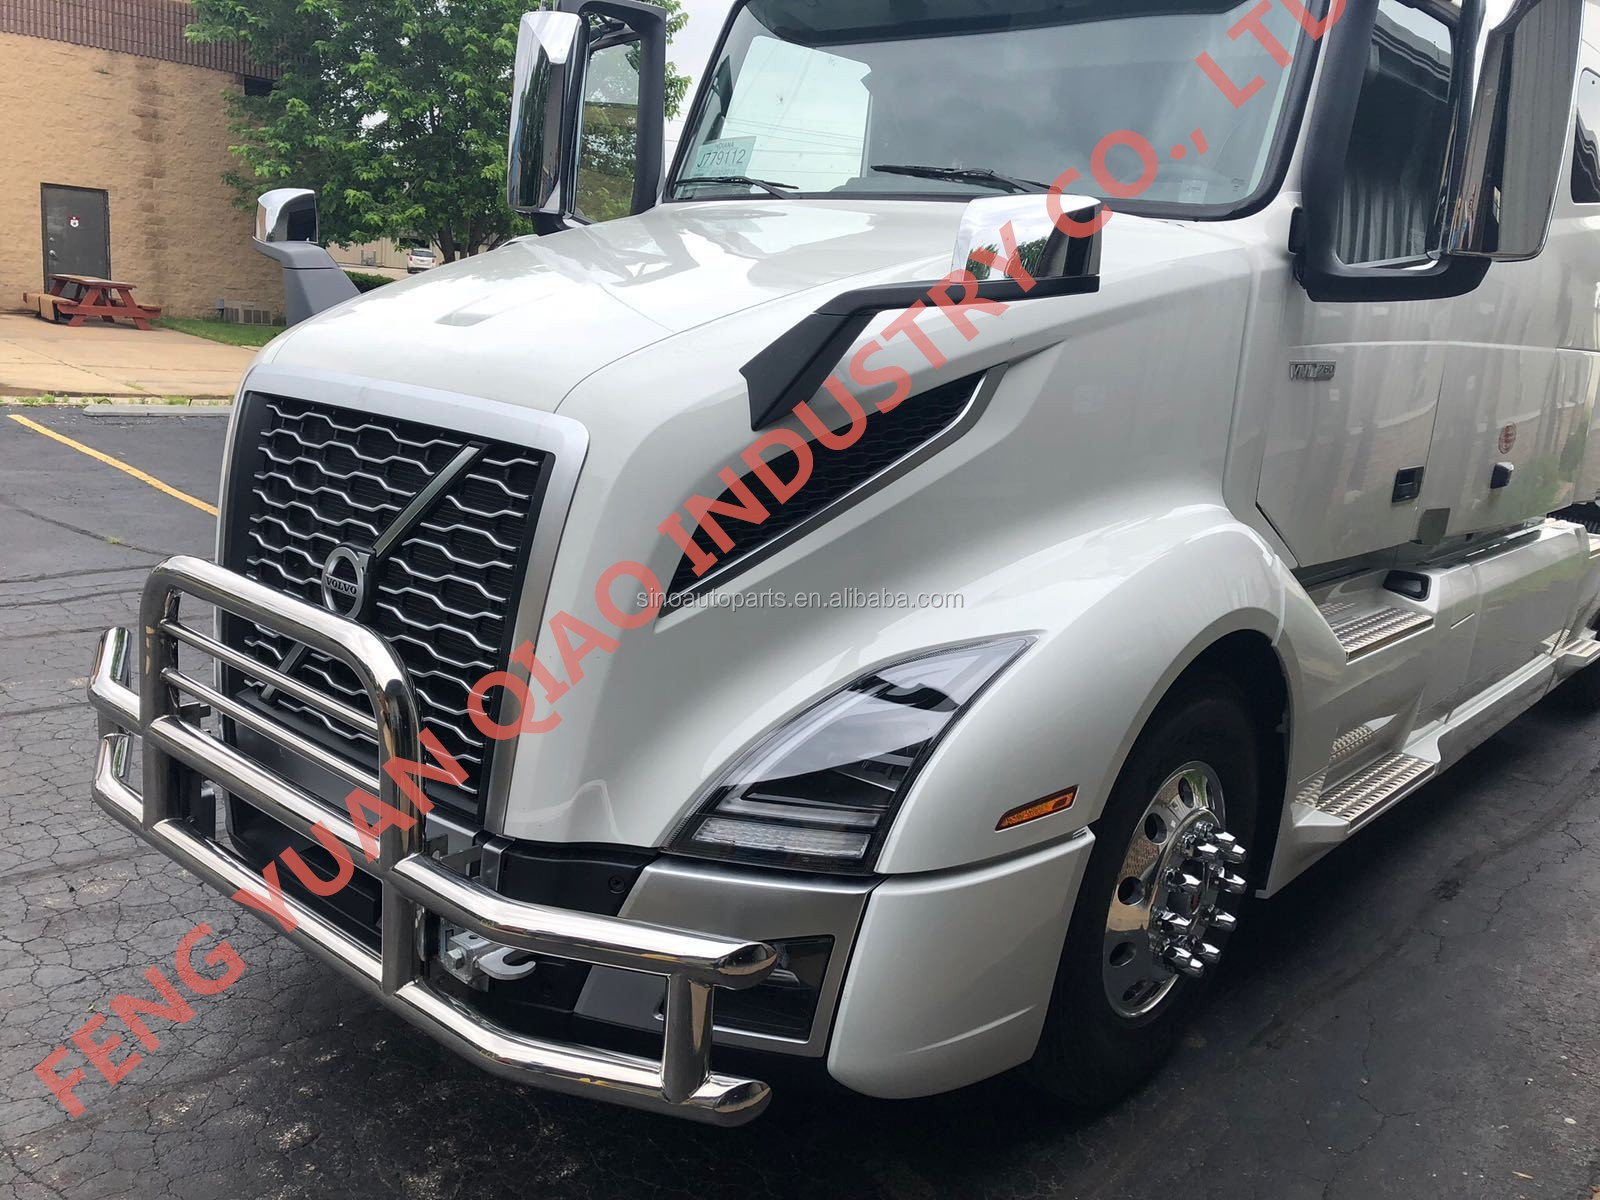 304 Stainless Steel Front Bumper Guard For 2018 New Volvo Vnl Vnr Truck  Deer Guard For 2018 New Freightliner Caascadia Truck - Buy New